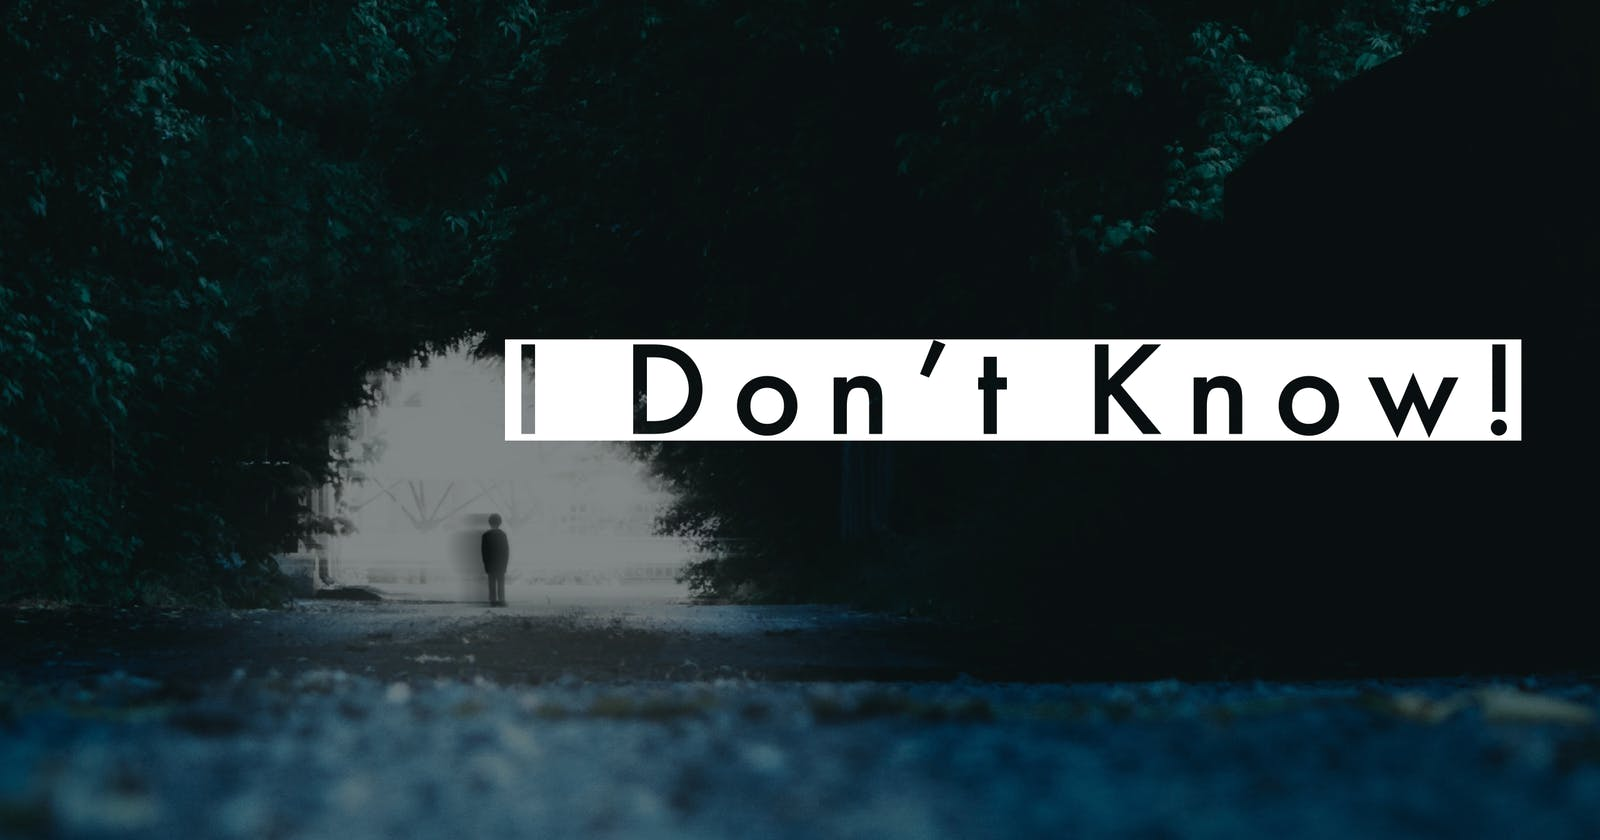 I don't know!